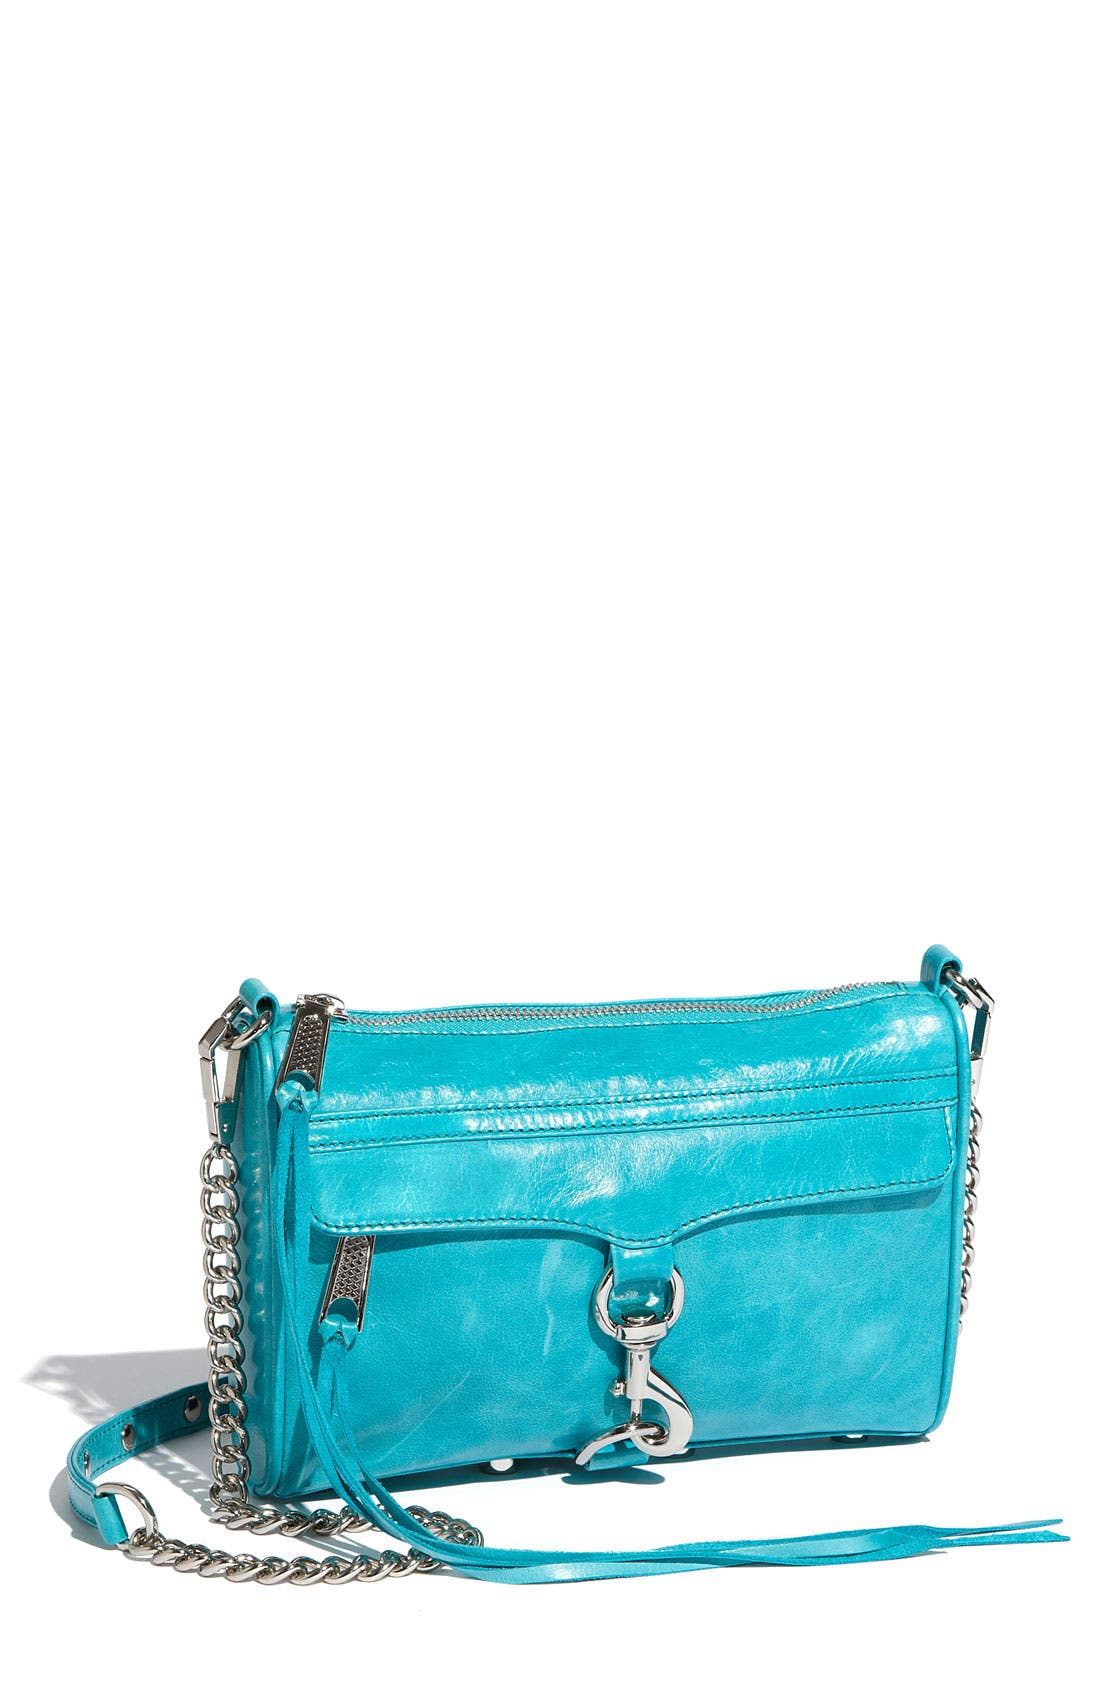 'Mini MAC' Croc Embossed Convertible Crossbody Bag,                             Main thumbnail 13, color,